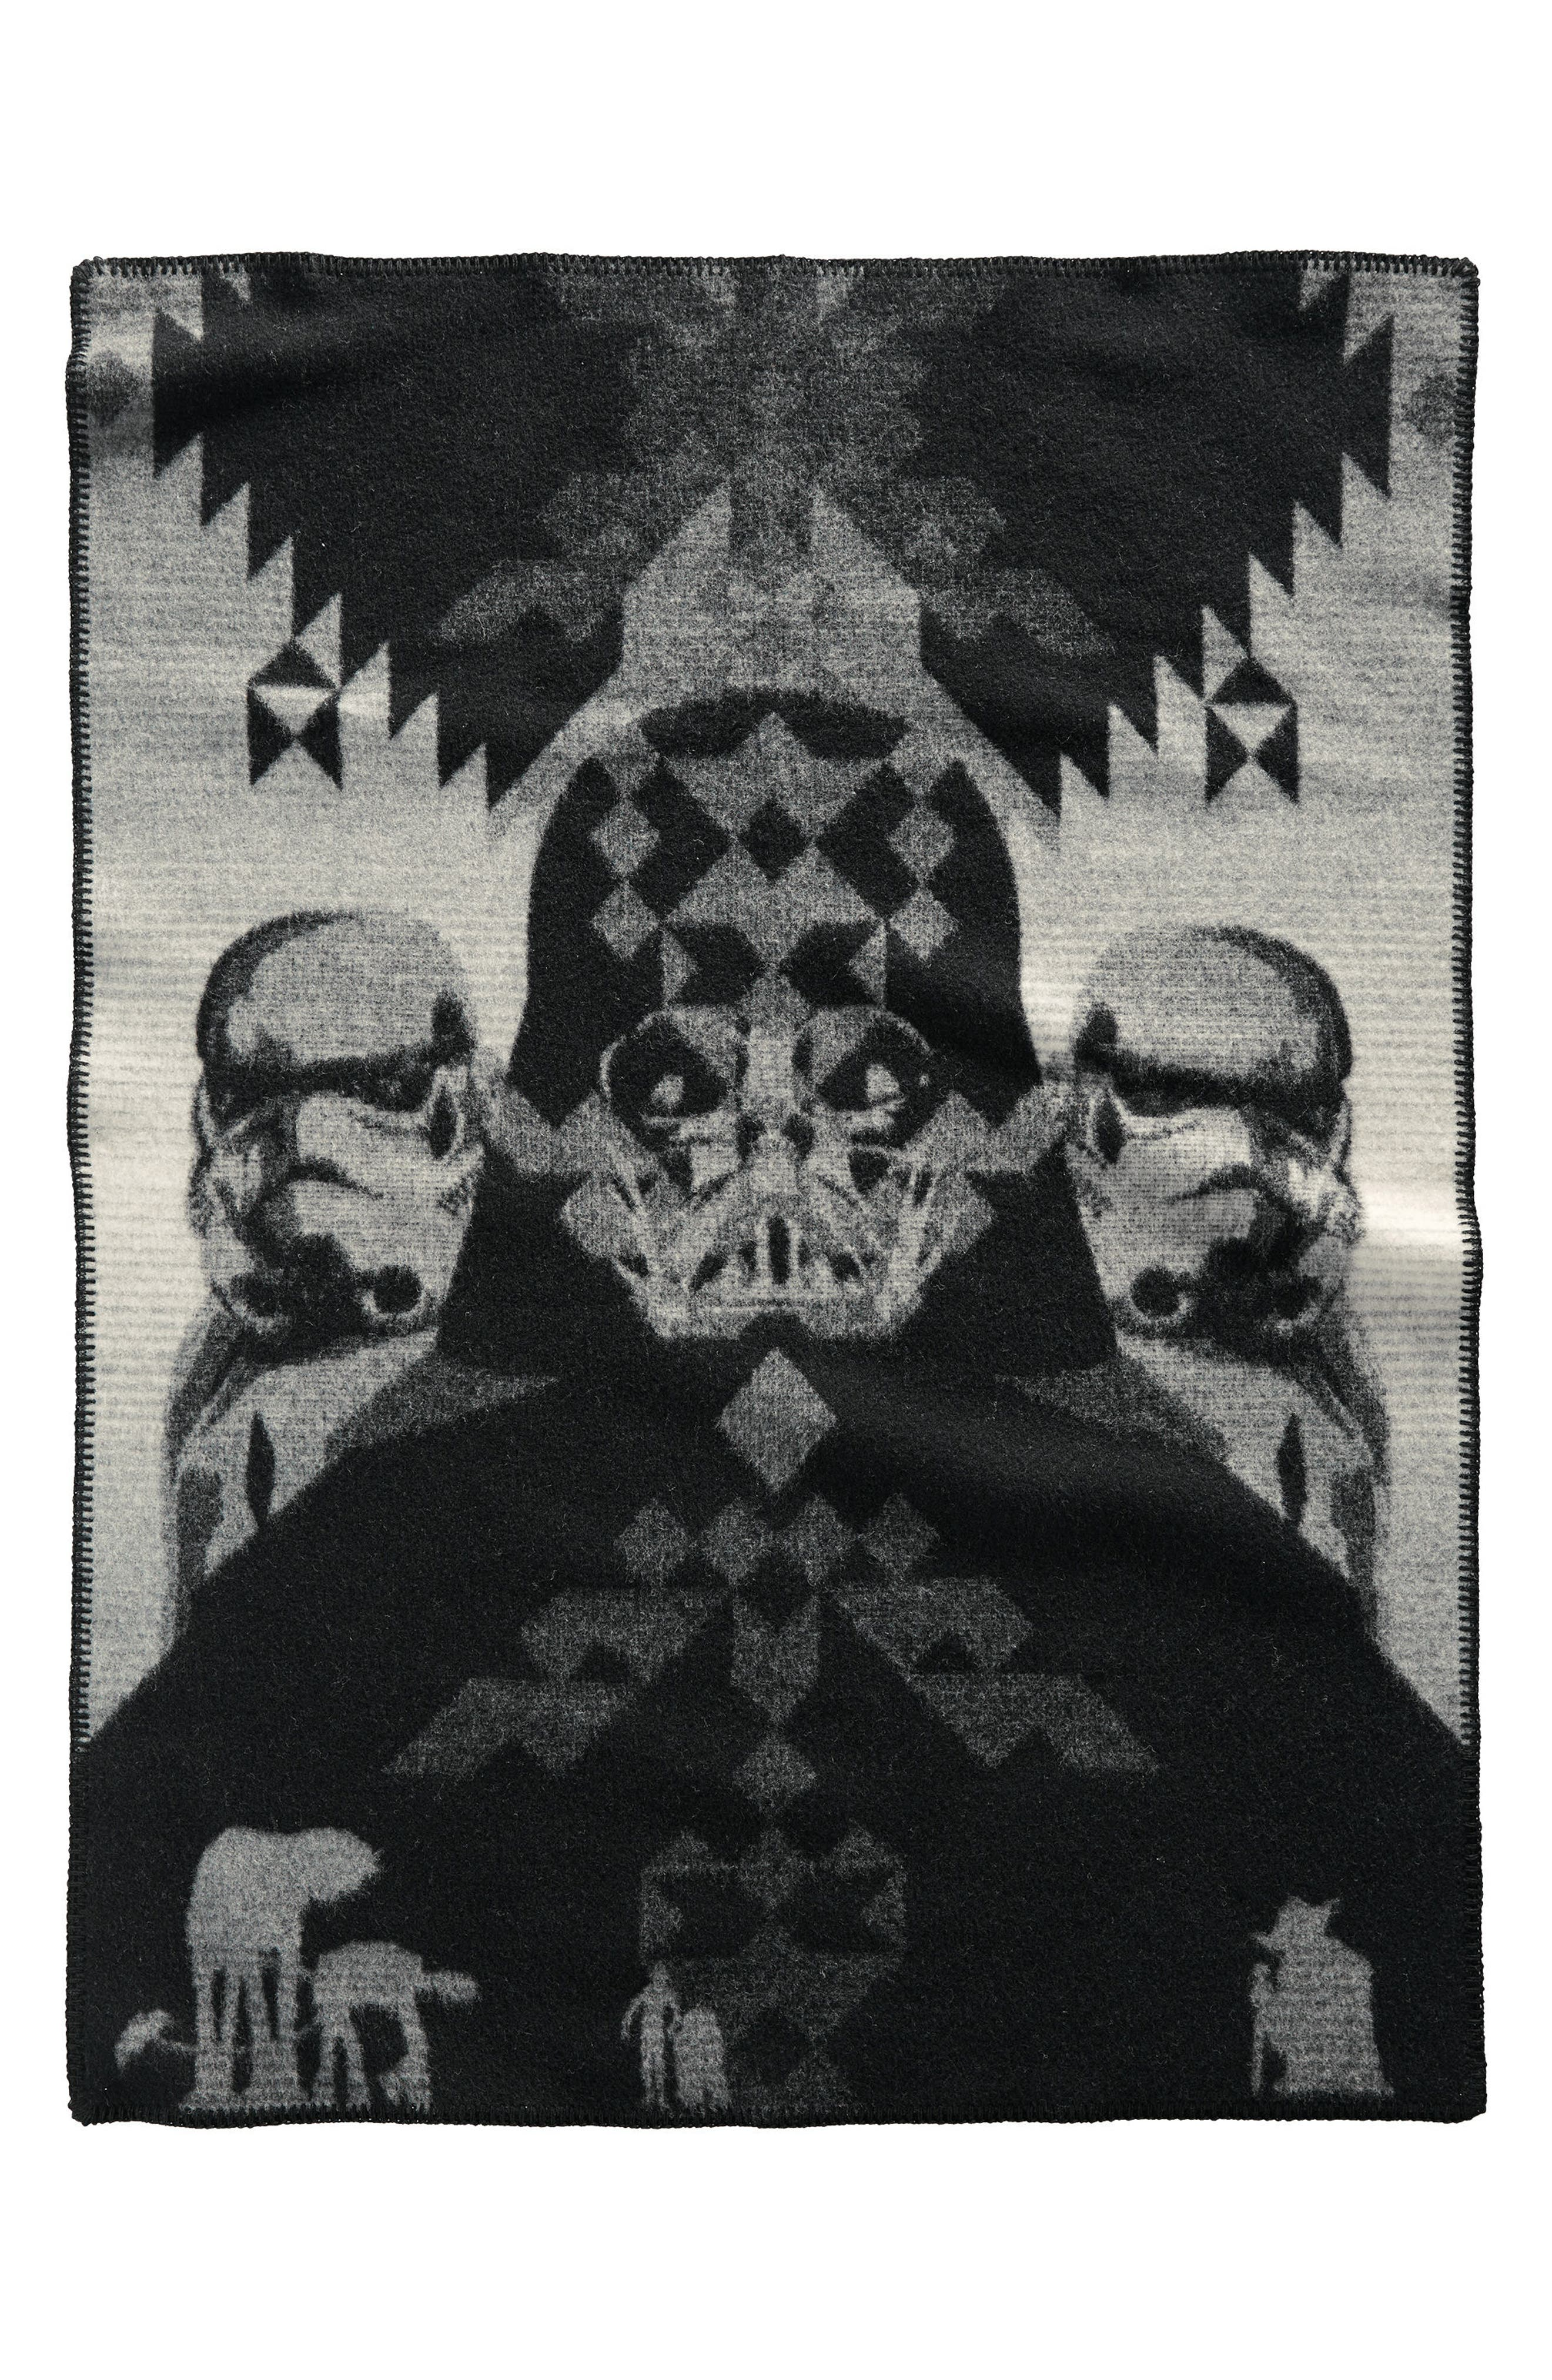 Alternate Image 1 Selected - Pendleton Star Wars™ - The Empire Strikes Back Wool Blend Baby Blanket